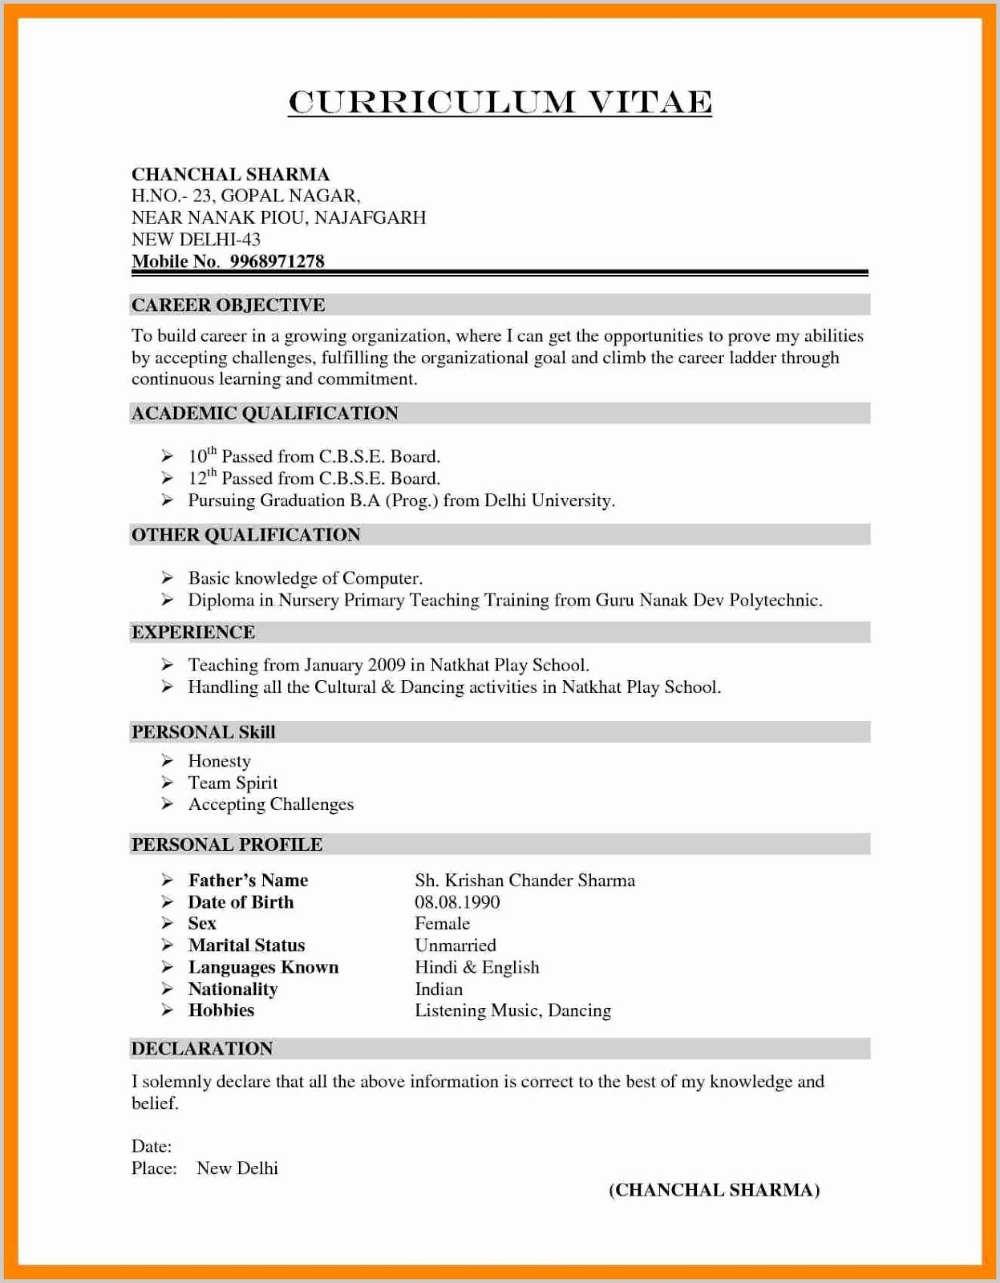 Teacher Resume Templates 2019 Free Teacher Resume Templates Word 2020 Teacher Resume Te Job Resume Format Teacher Resume Template Free Resume Format Download